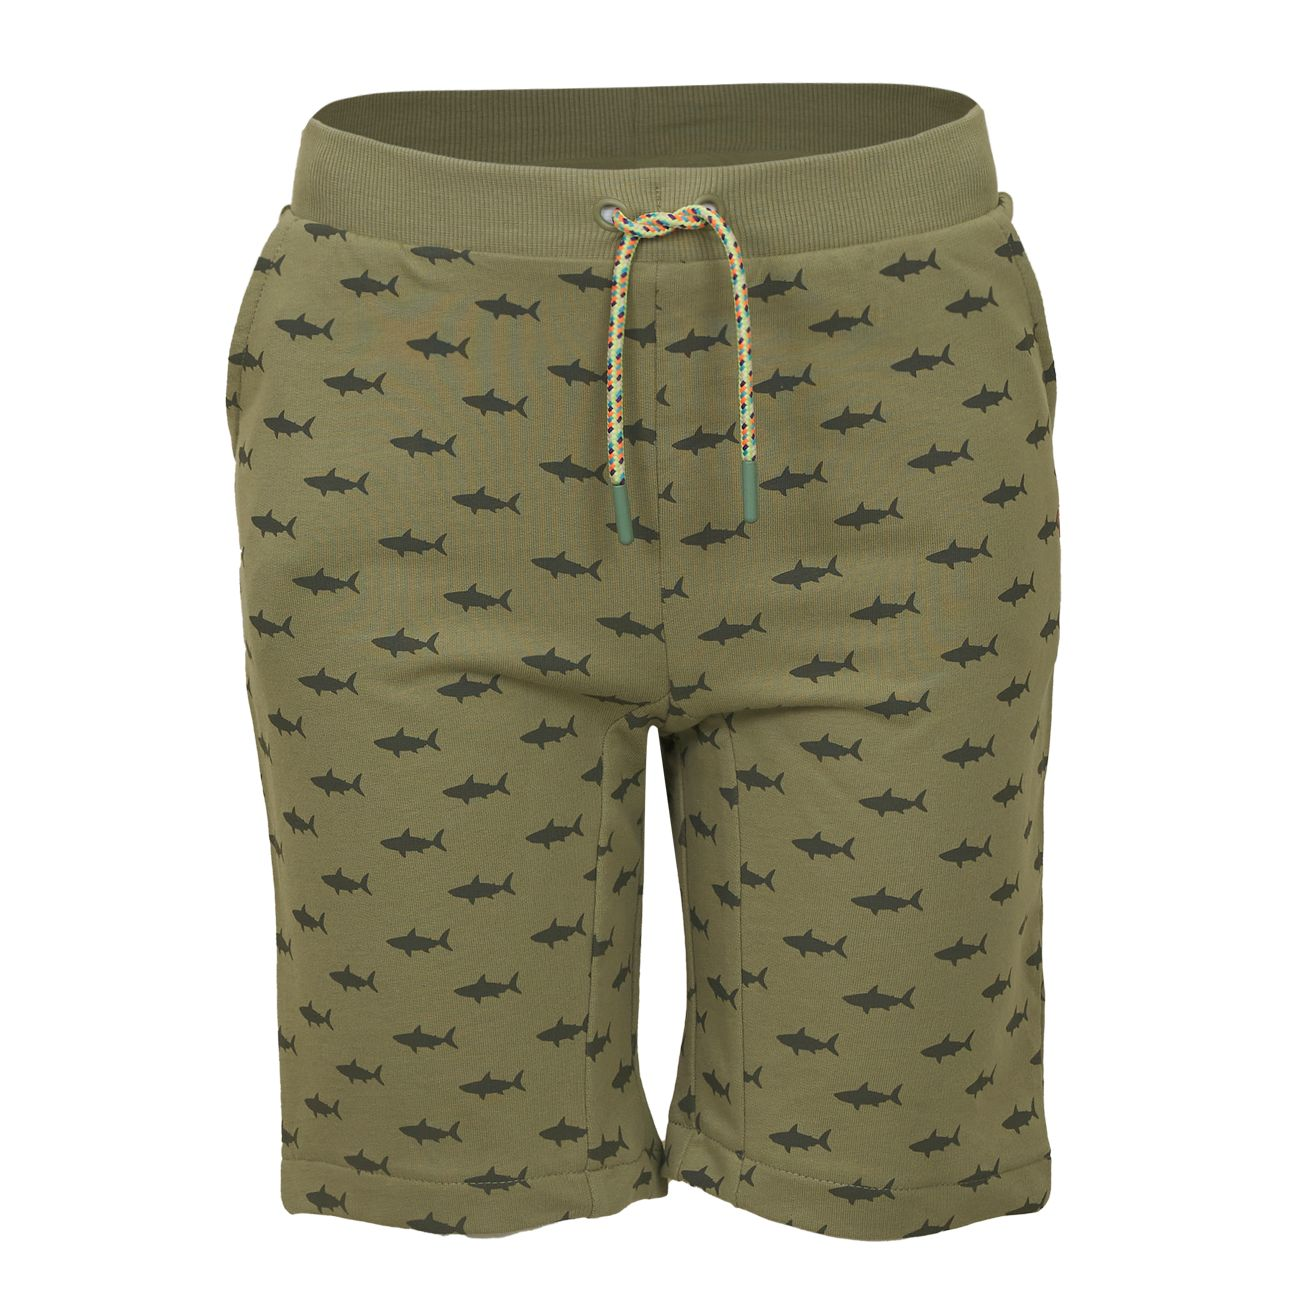 Jogginghose Haie 092 Khaki SOMEONE 100% Awesome